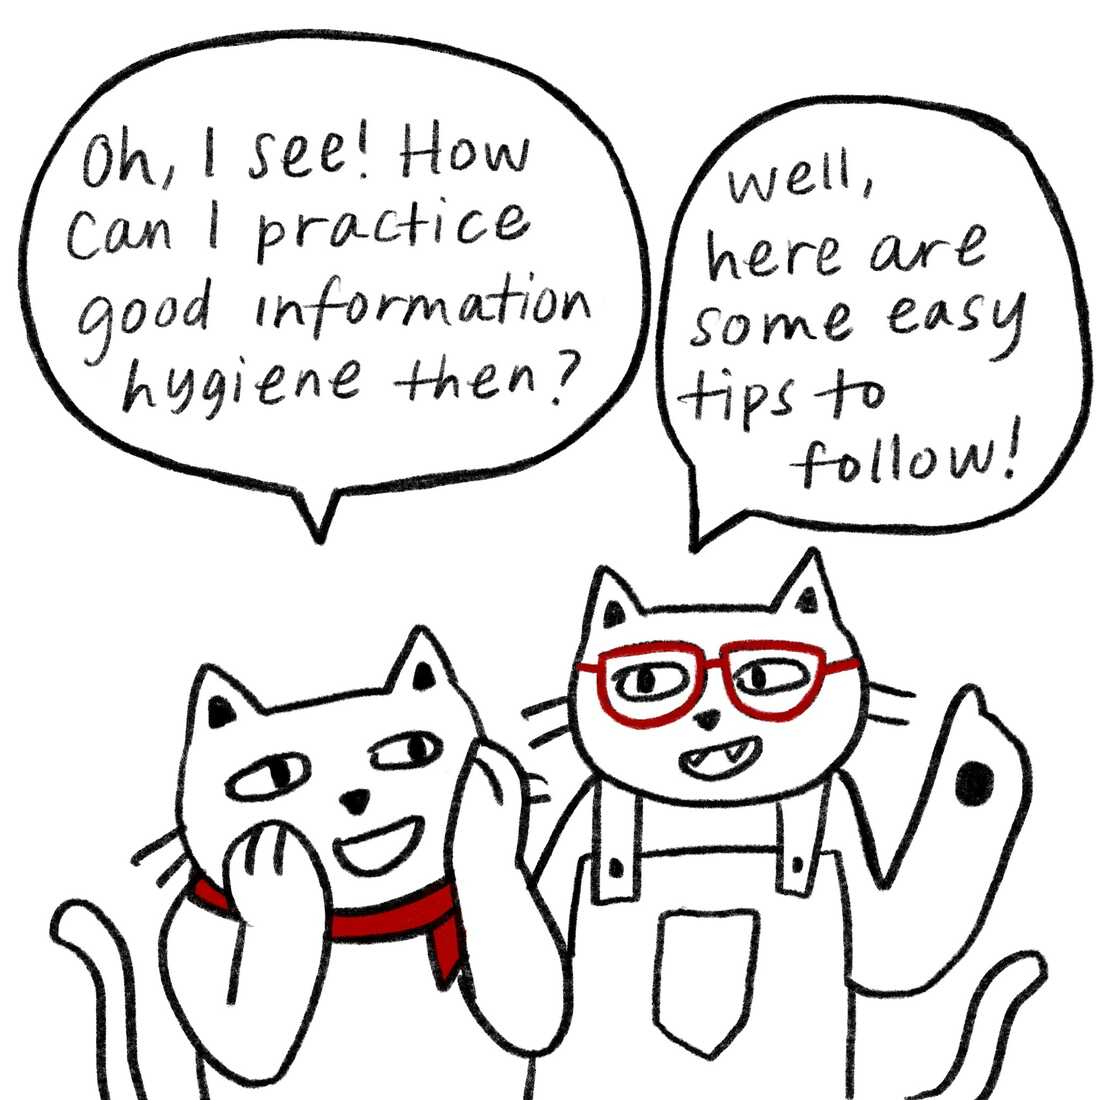 """""""Oh, I see!"""" says Bandanna Cat. """"How can I practice good information hygiene then?"""" """"Well, here are some easy tips to follow,"""" answers Glasses Cat."""